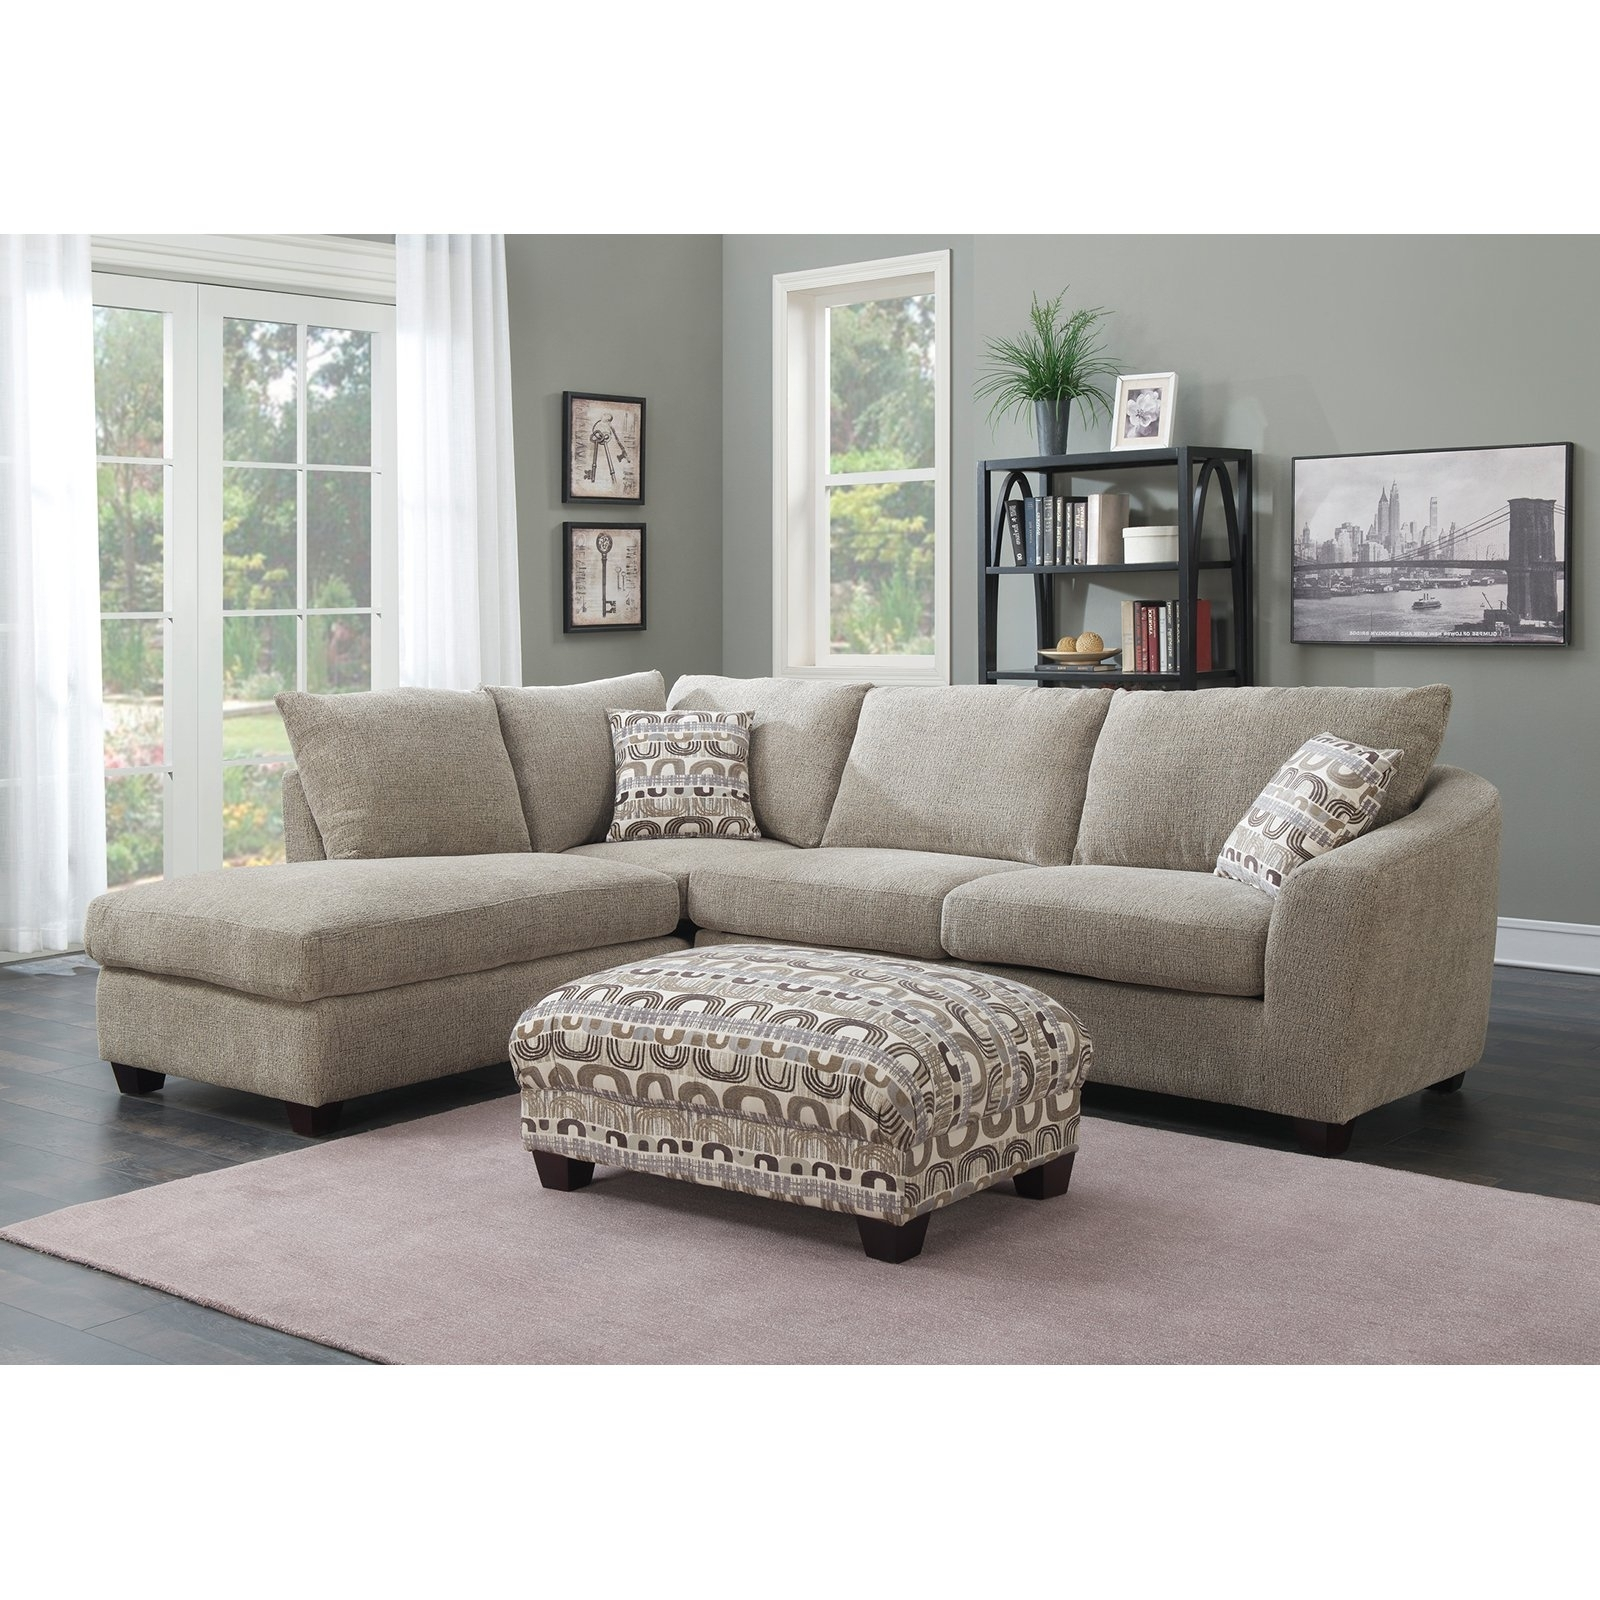 Sectional Chaises With Regard To Well Known Emerald Home Urbana 2 Piece Sectional Sofa With Chaise – Walmart (View 14 of 15)